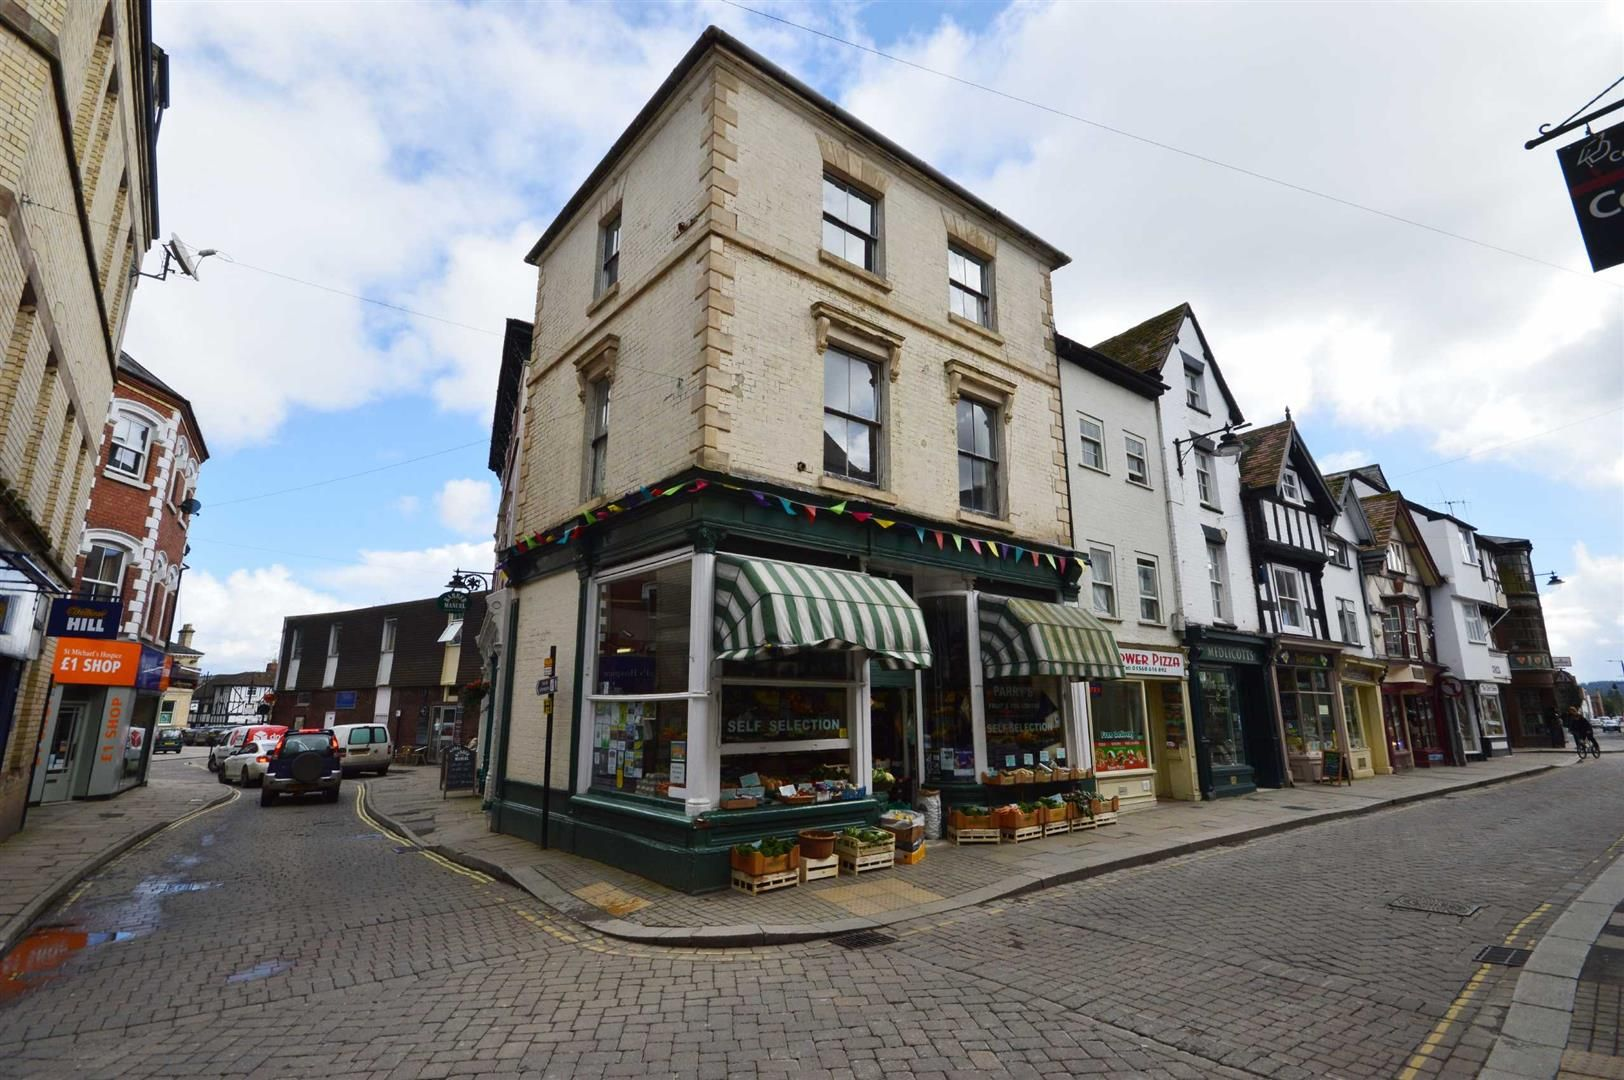 3 bed  for sale in Leominster, HR6